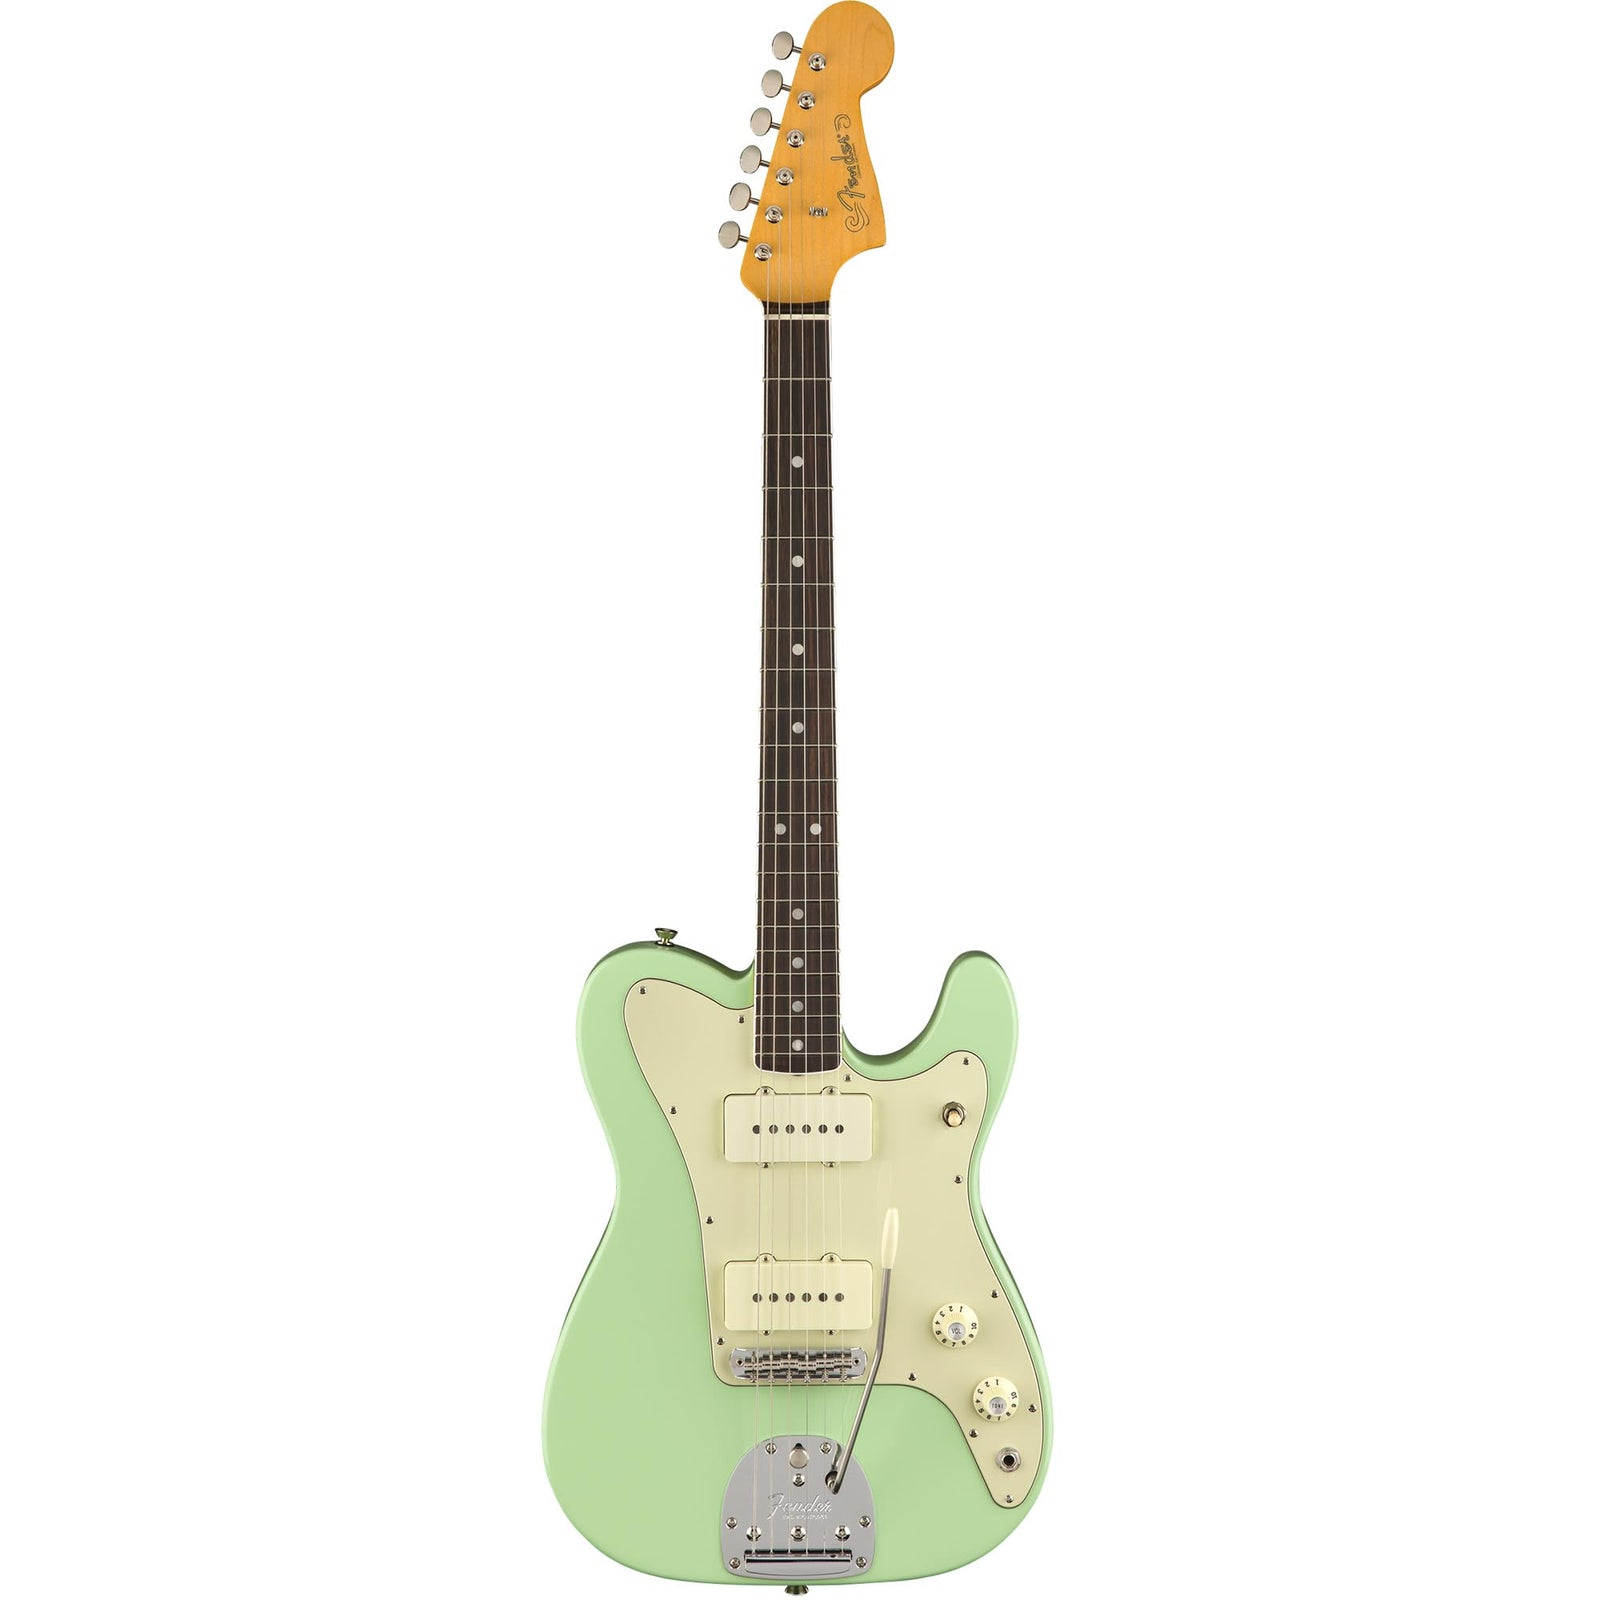 Fender Limited Edition Jazz Telecaster Rosewood Surf Green Sound Synthesizer